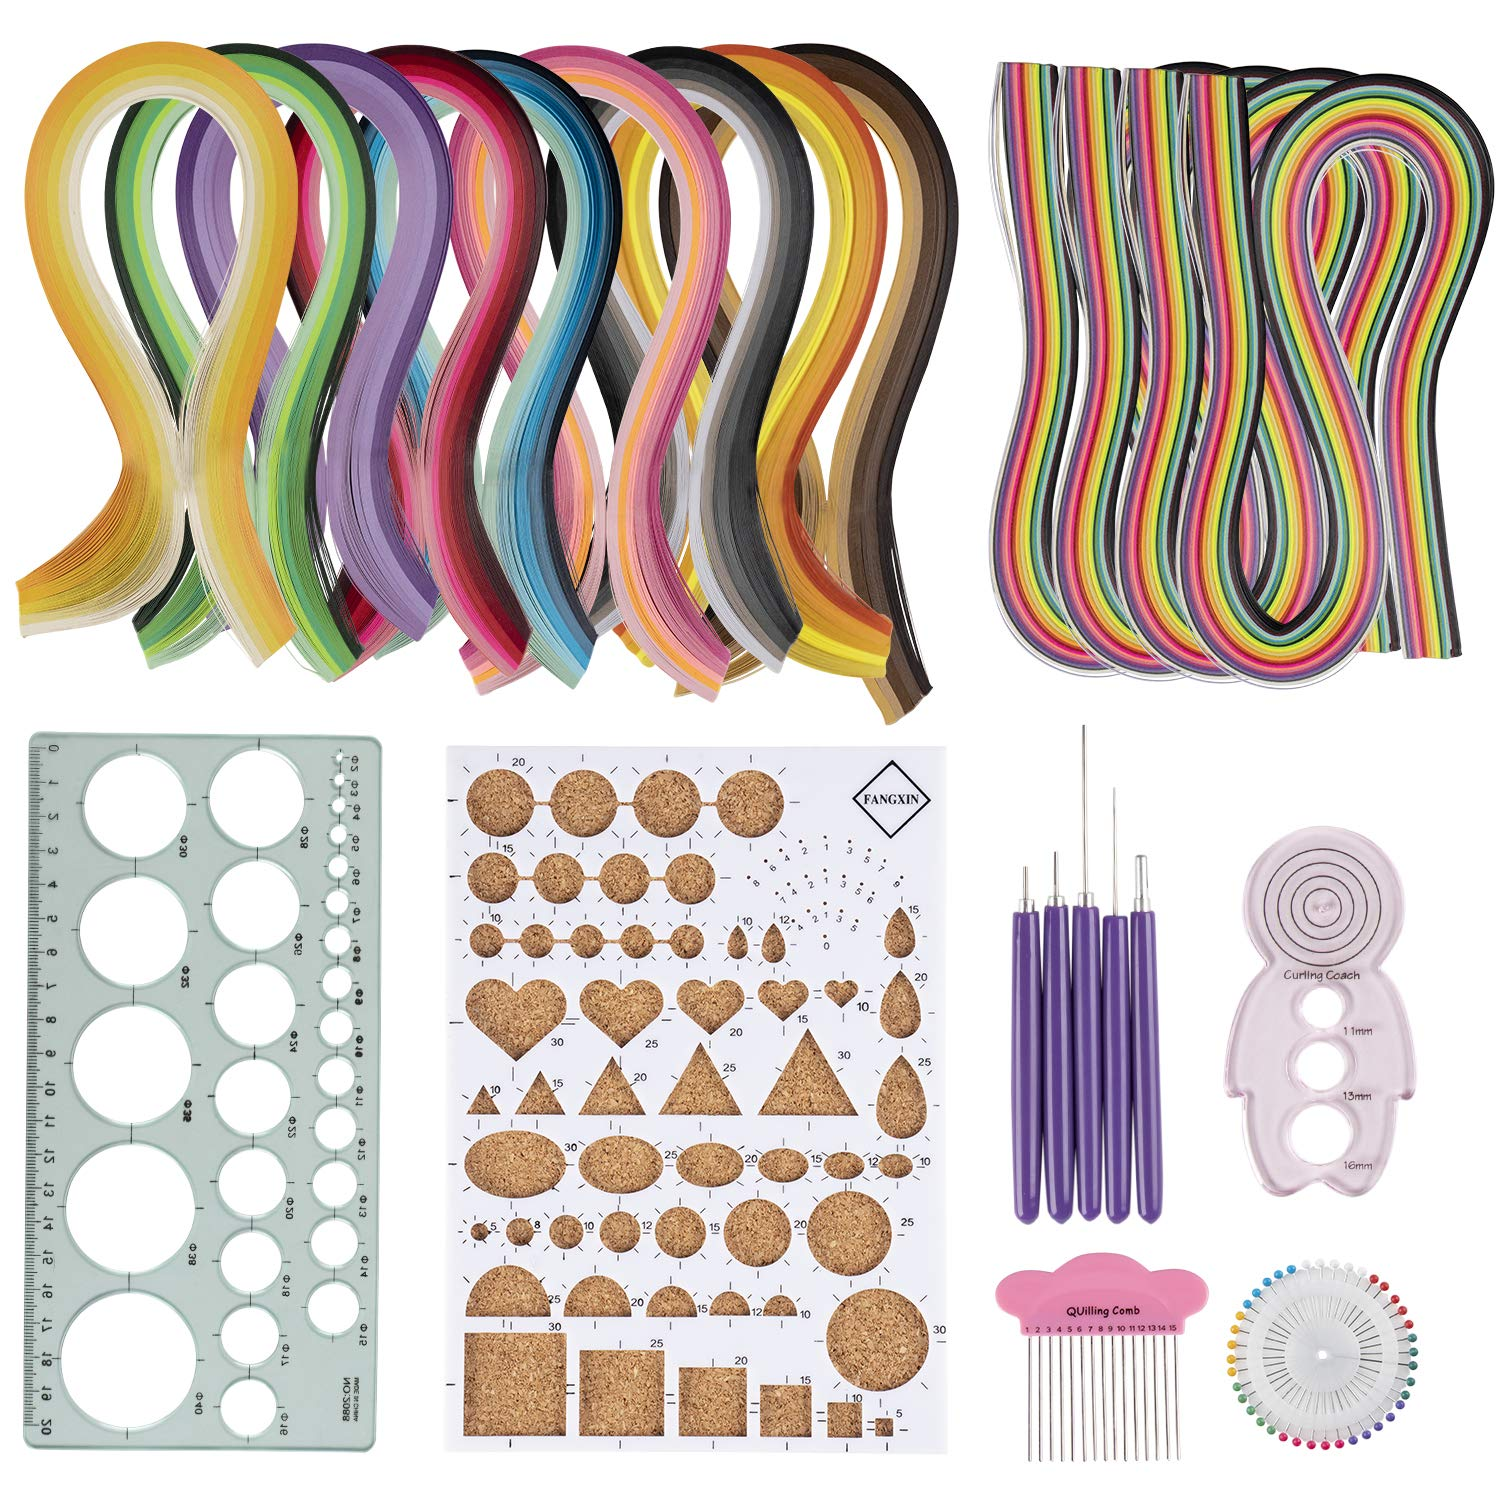 Includes 9 Gradient Color Strip Set Comb 5 Awls Ruler Template 4 Rainbow Color Strip Set Curling Coach Pearl Pin Set Quilling Kit Quilling Board 23-in-1 Paper Quilling Set